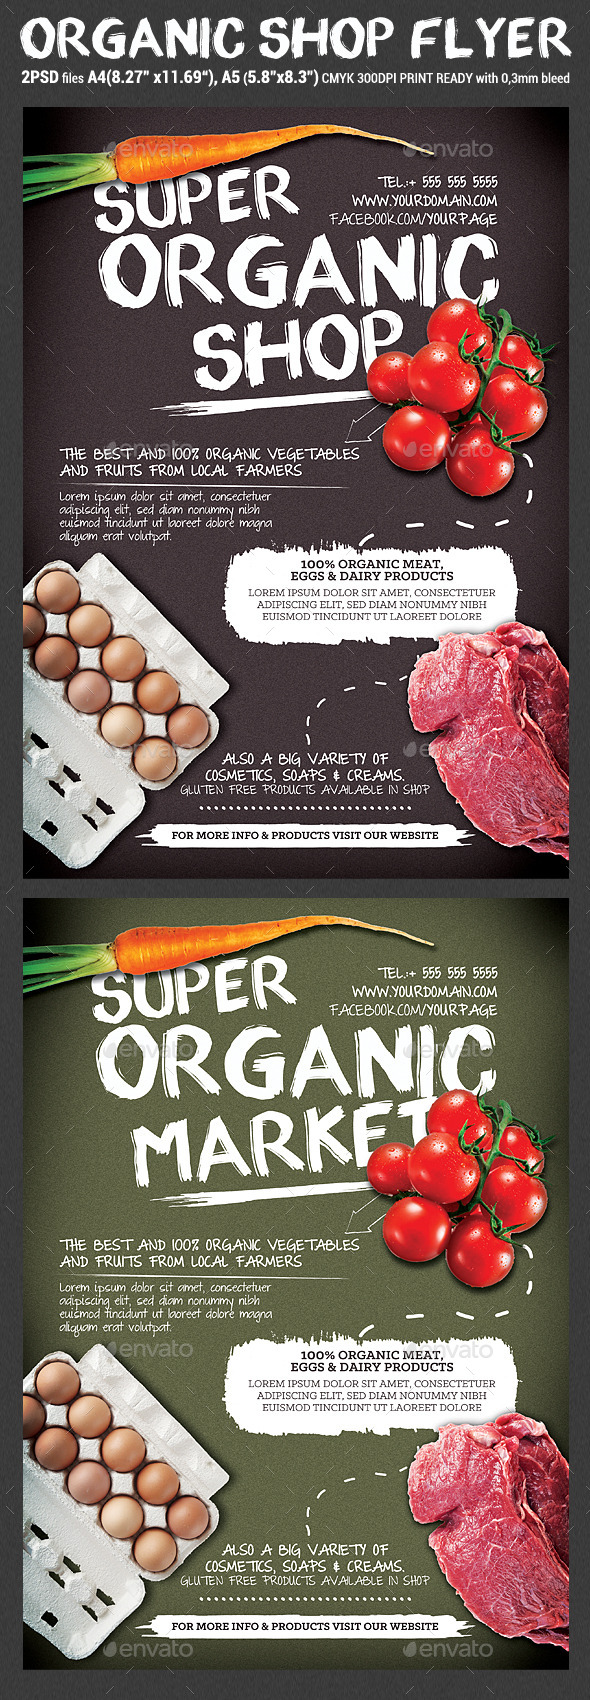 Organic Shop/Market Flyer Template by Hotpin | GraphicRiver